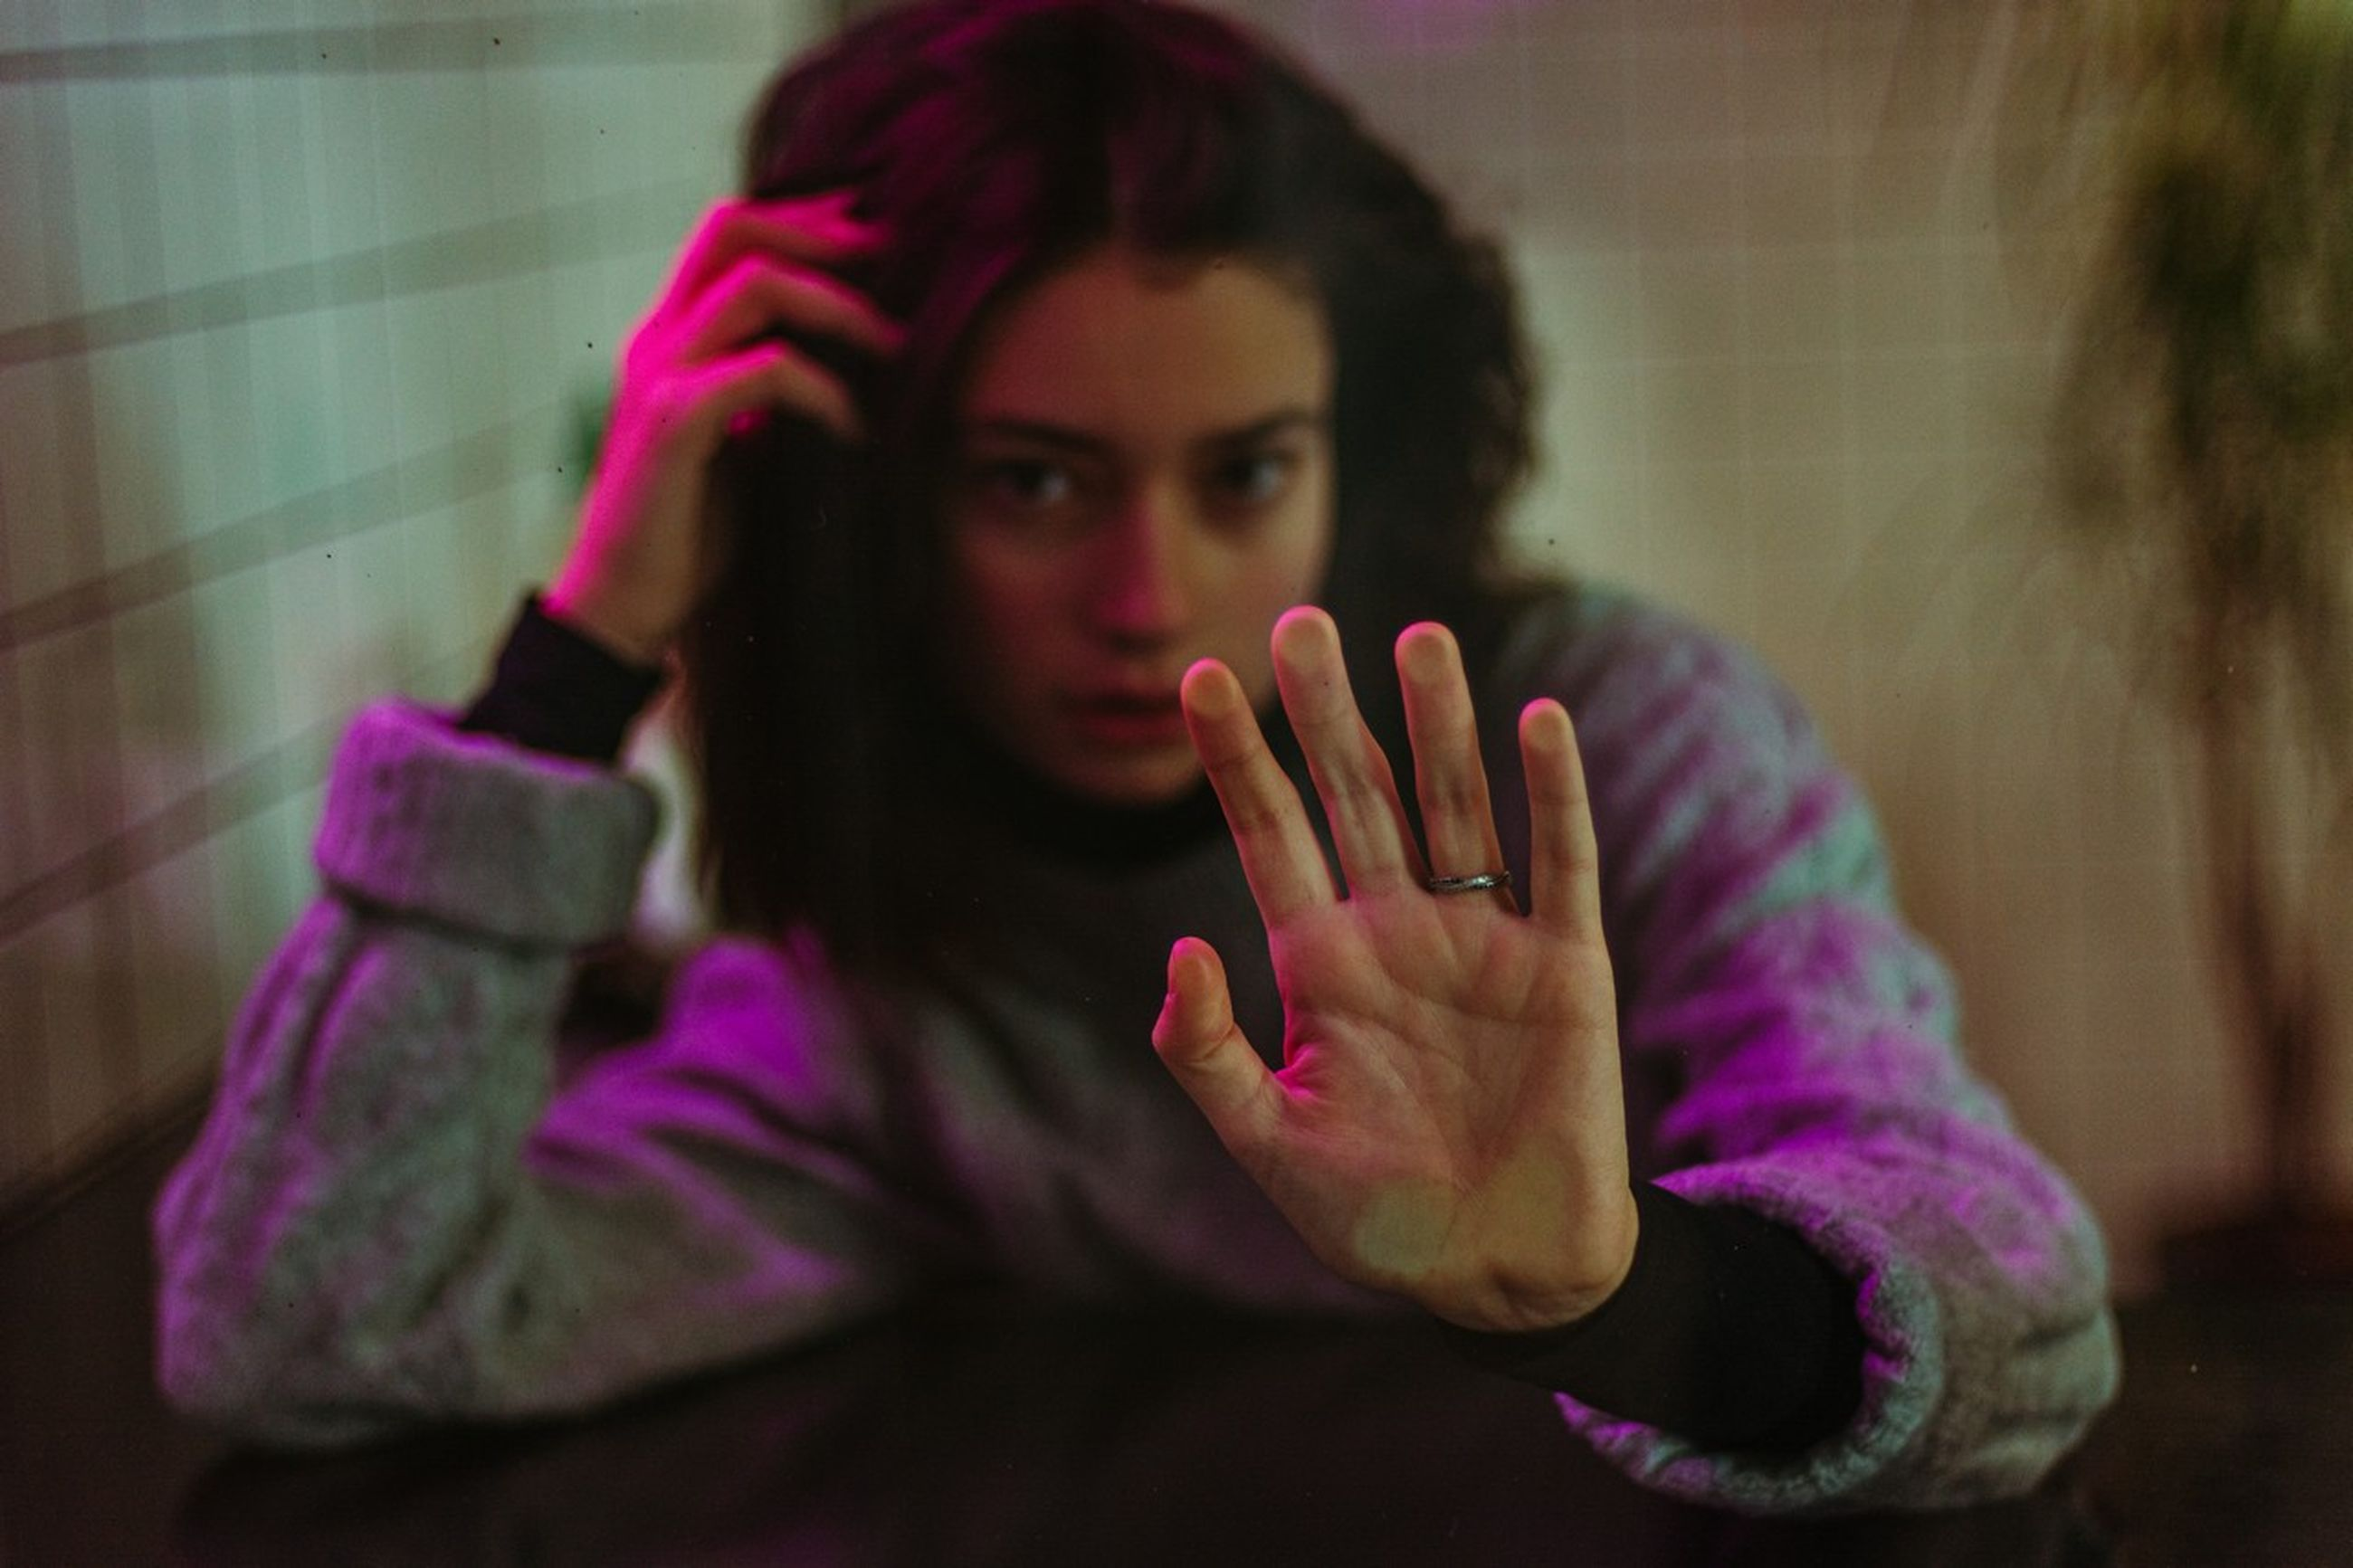 one person, real people, hand, indoors, lifestyles, women, human hand, portrait, adult, front view, young adult, young women, emotion, casual clothing, leisure activity, home interior, focus on foreground, headshot, hairstyle, stop gesture